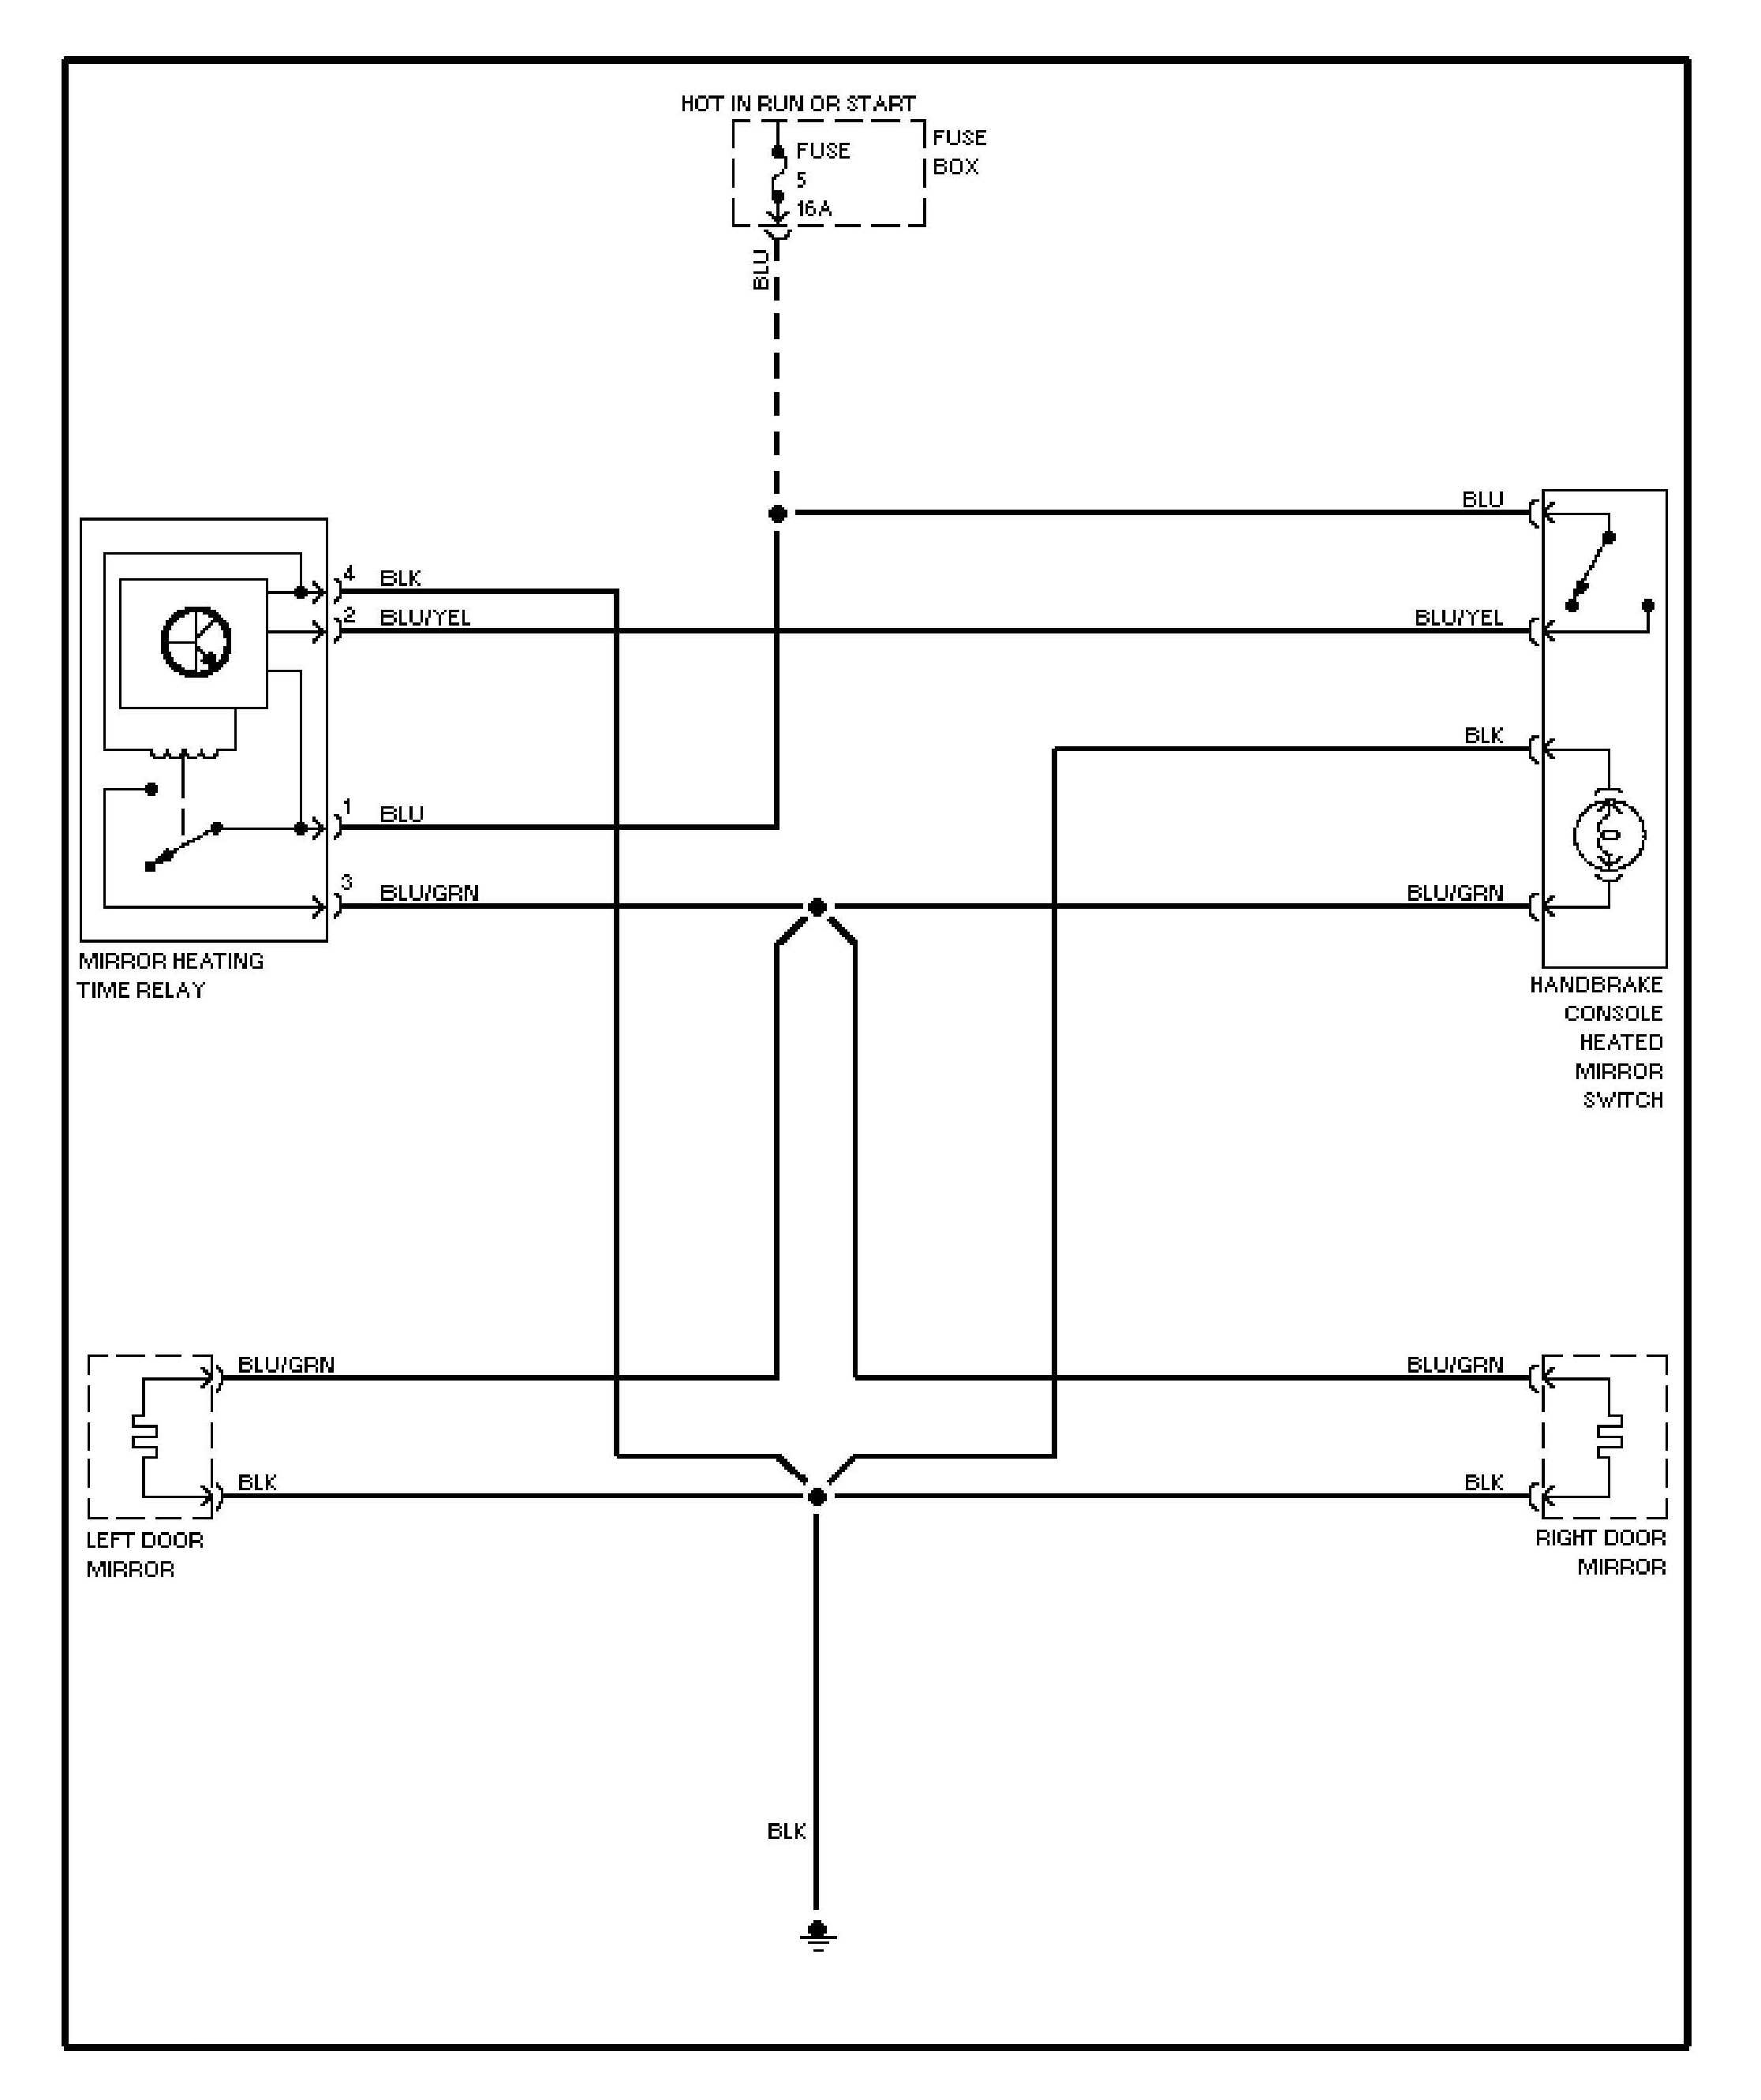 heated mirror wiring diagram s air conditioning wiring